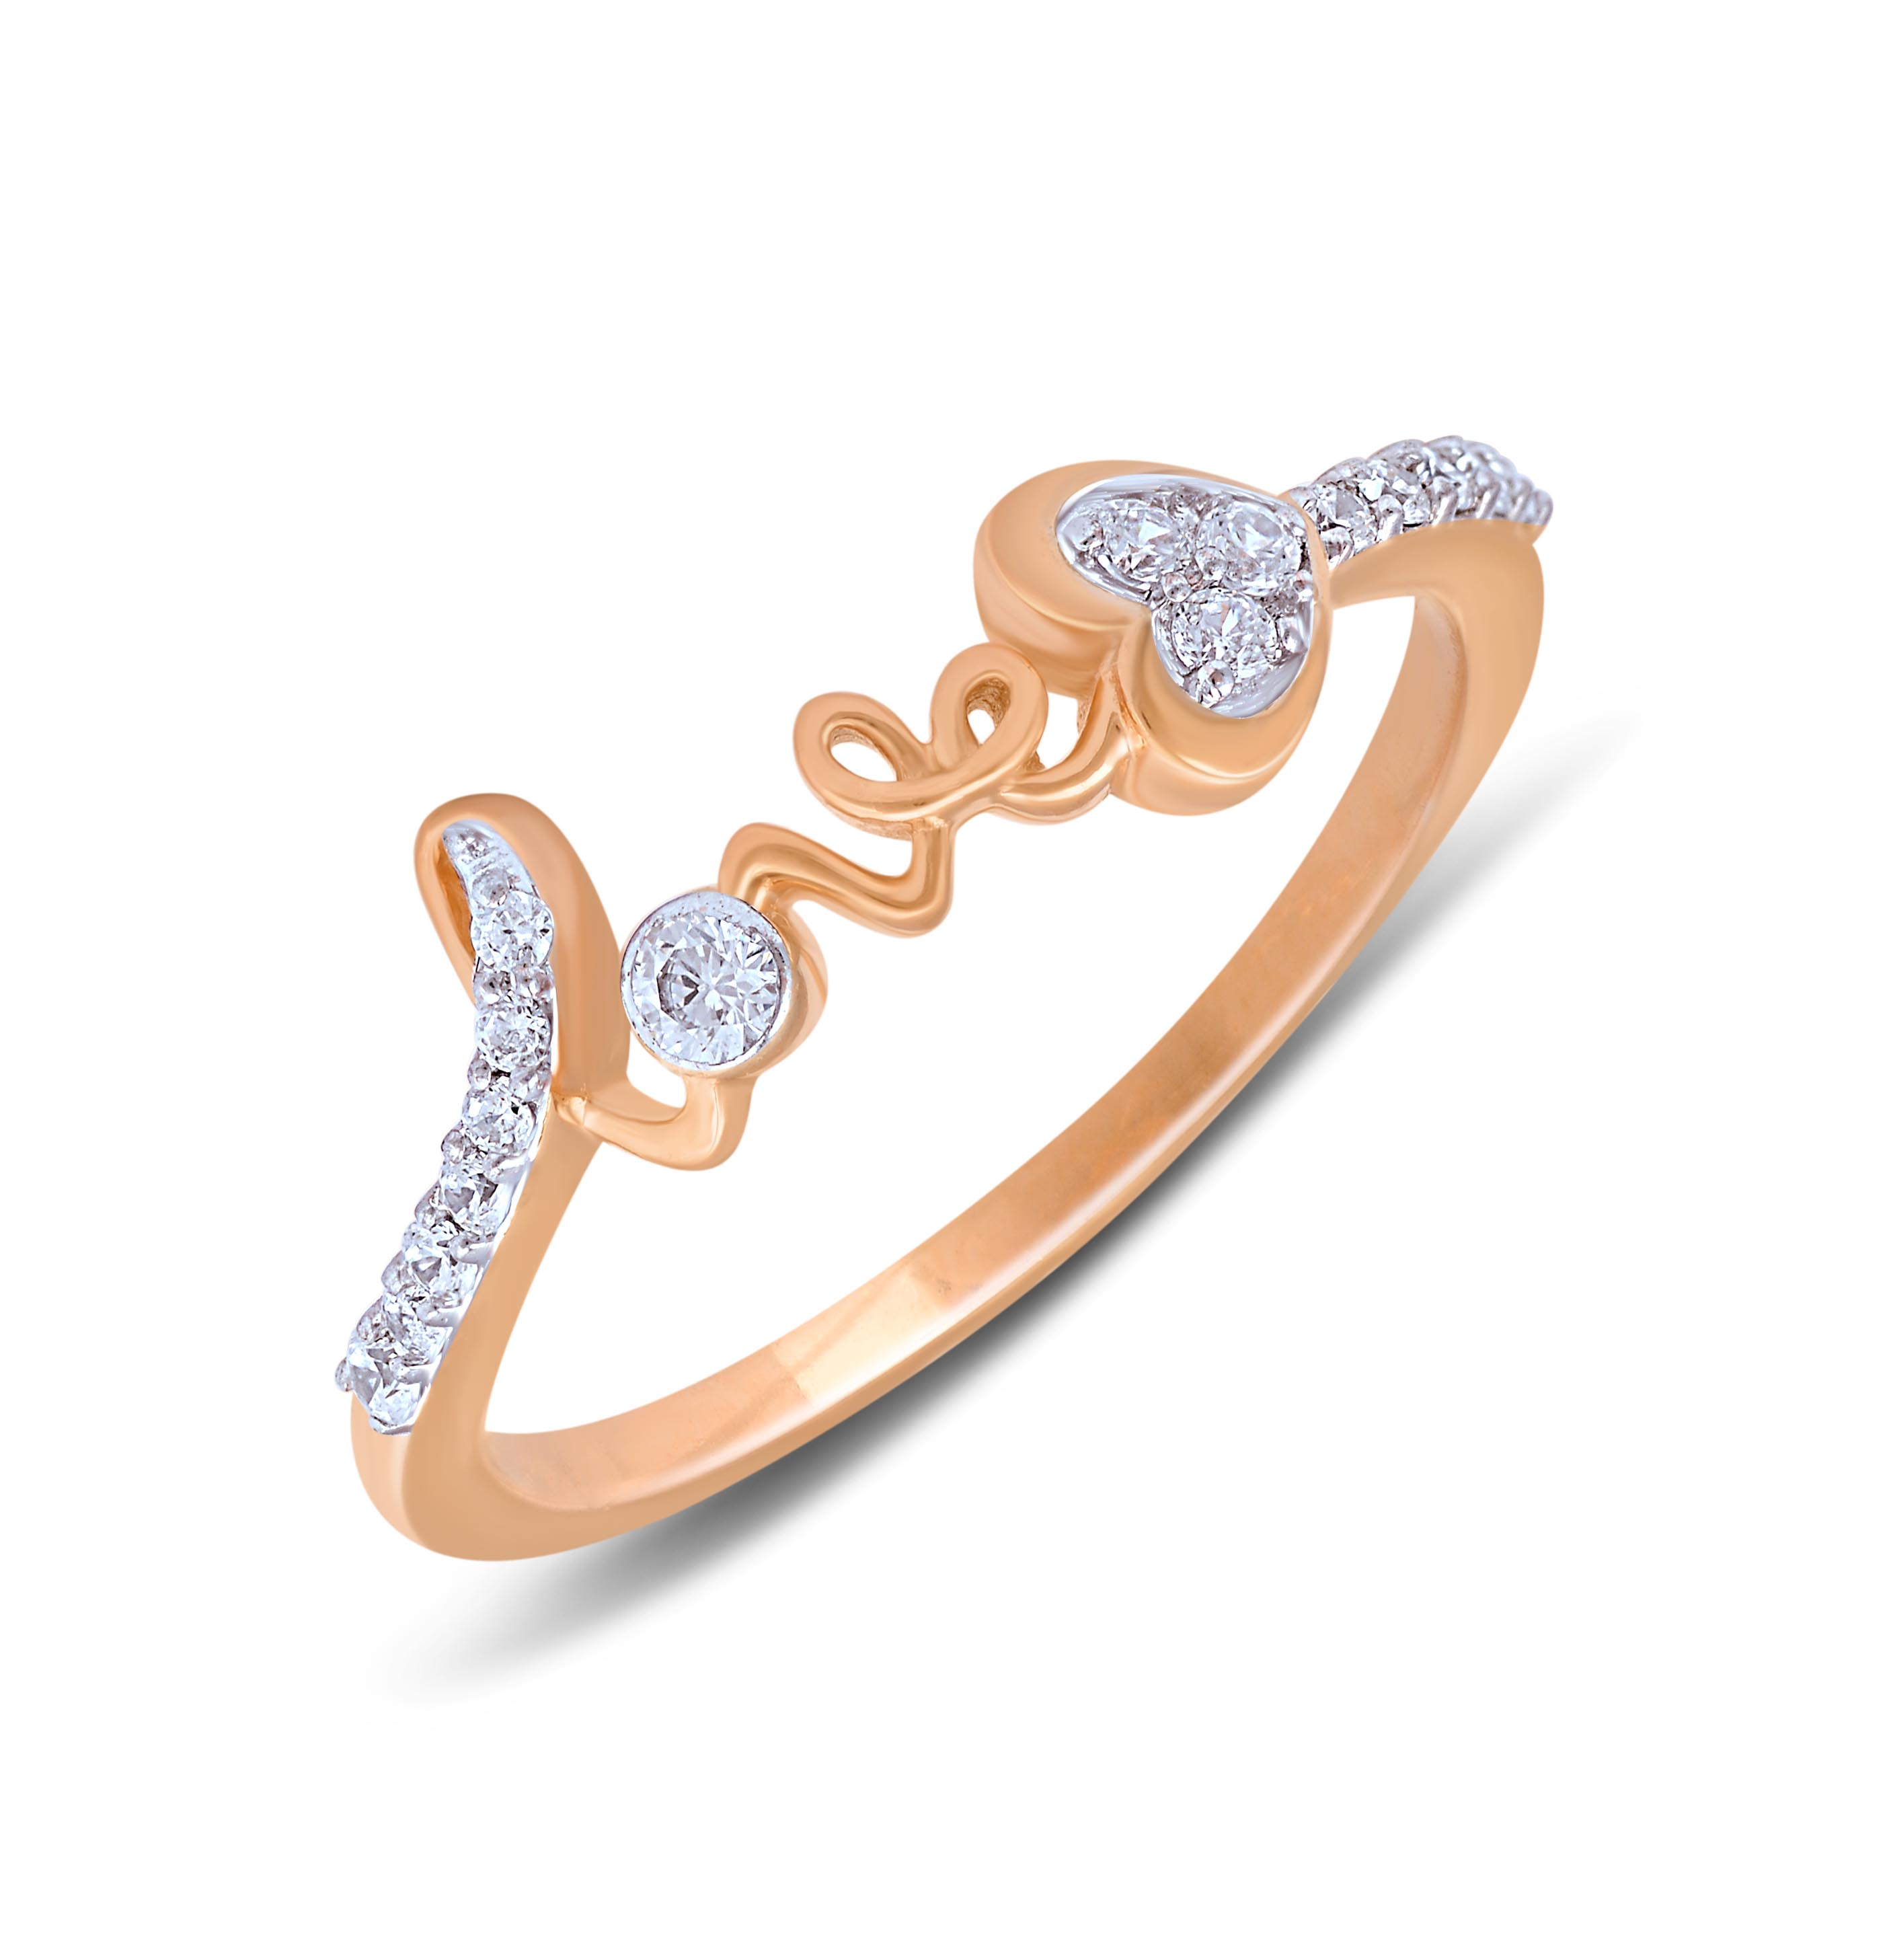 Beguiling Ladies Diamond Ring